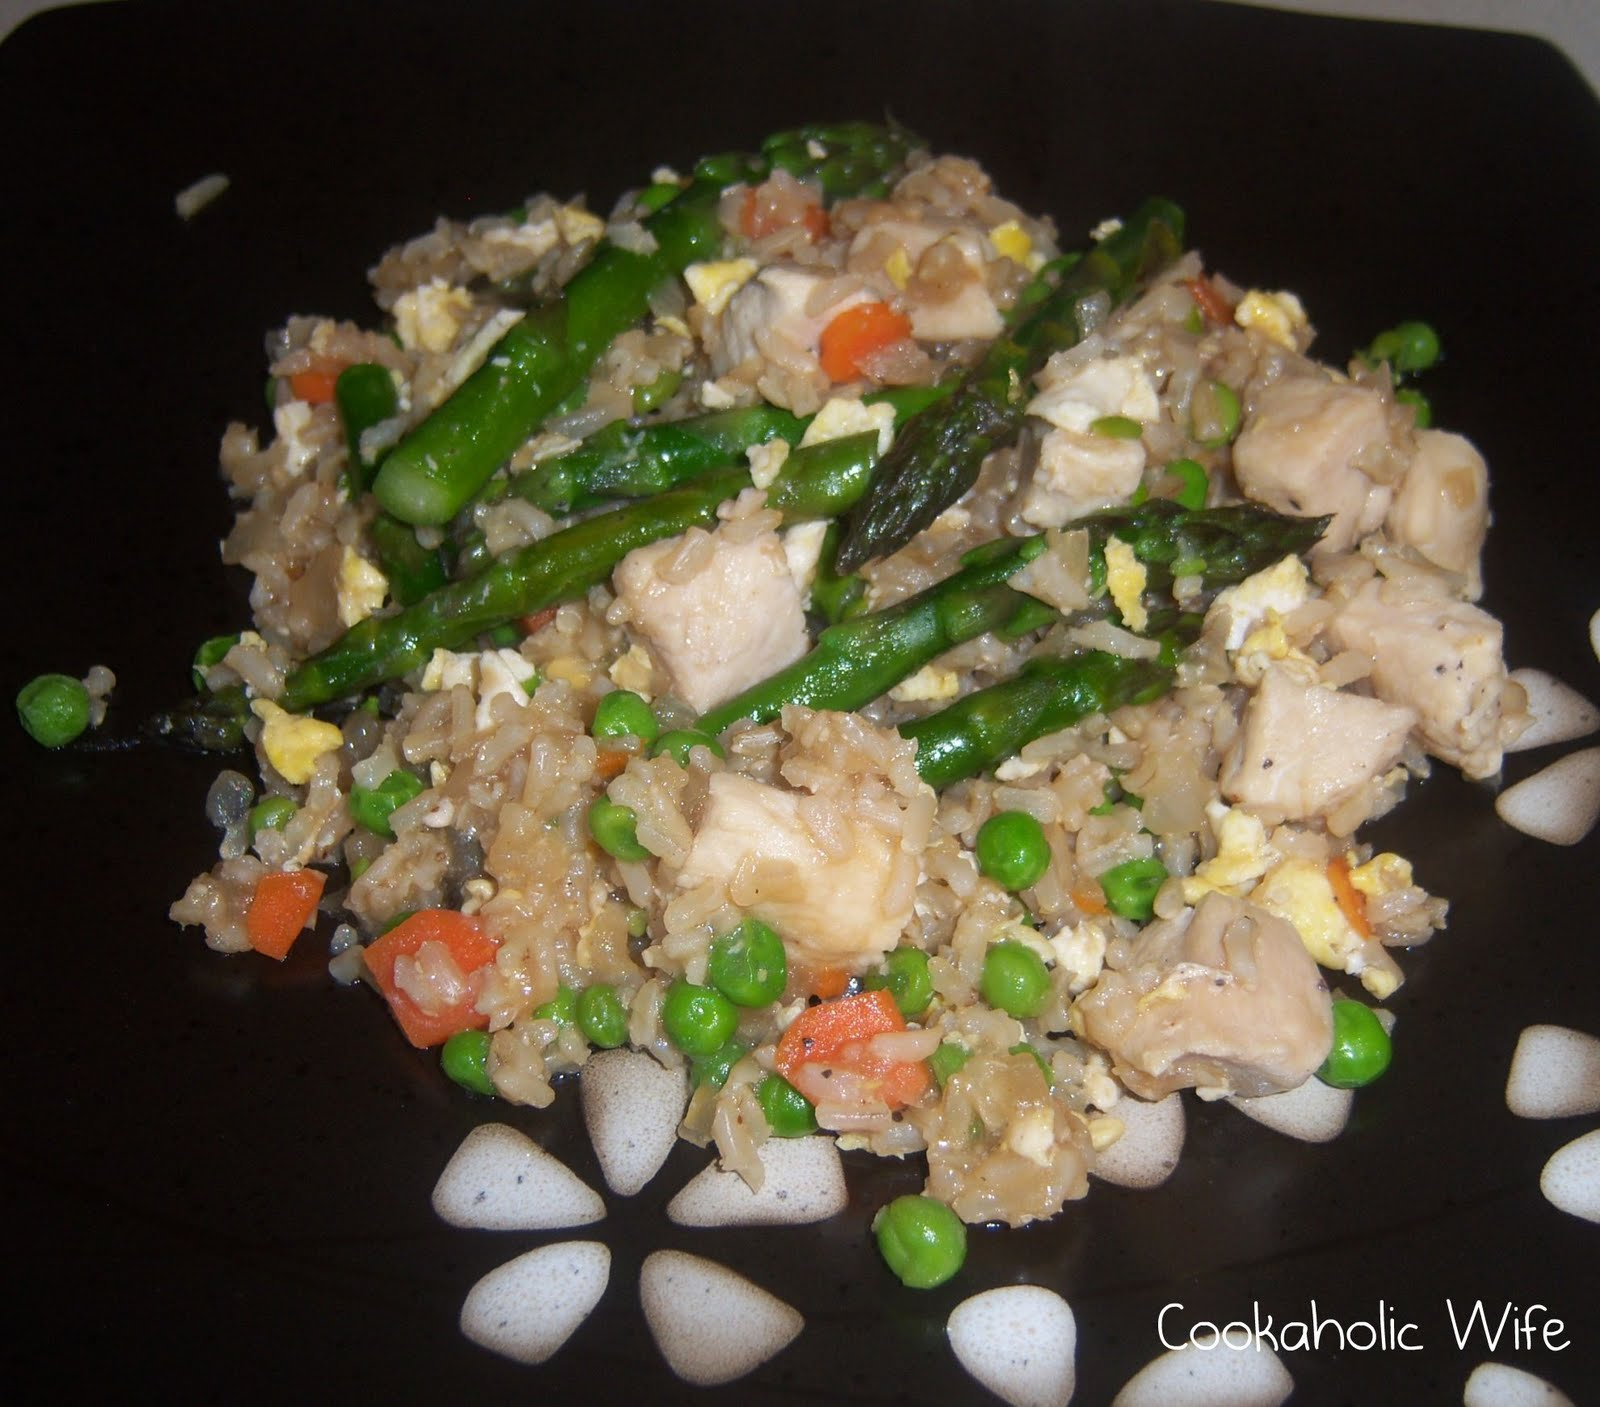 Cookaholic wife recipe swap chicken fried rice this recipe comes from lisa at tastetastic voyage she found the recipe on recipe zaar forumfinder Gallery